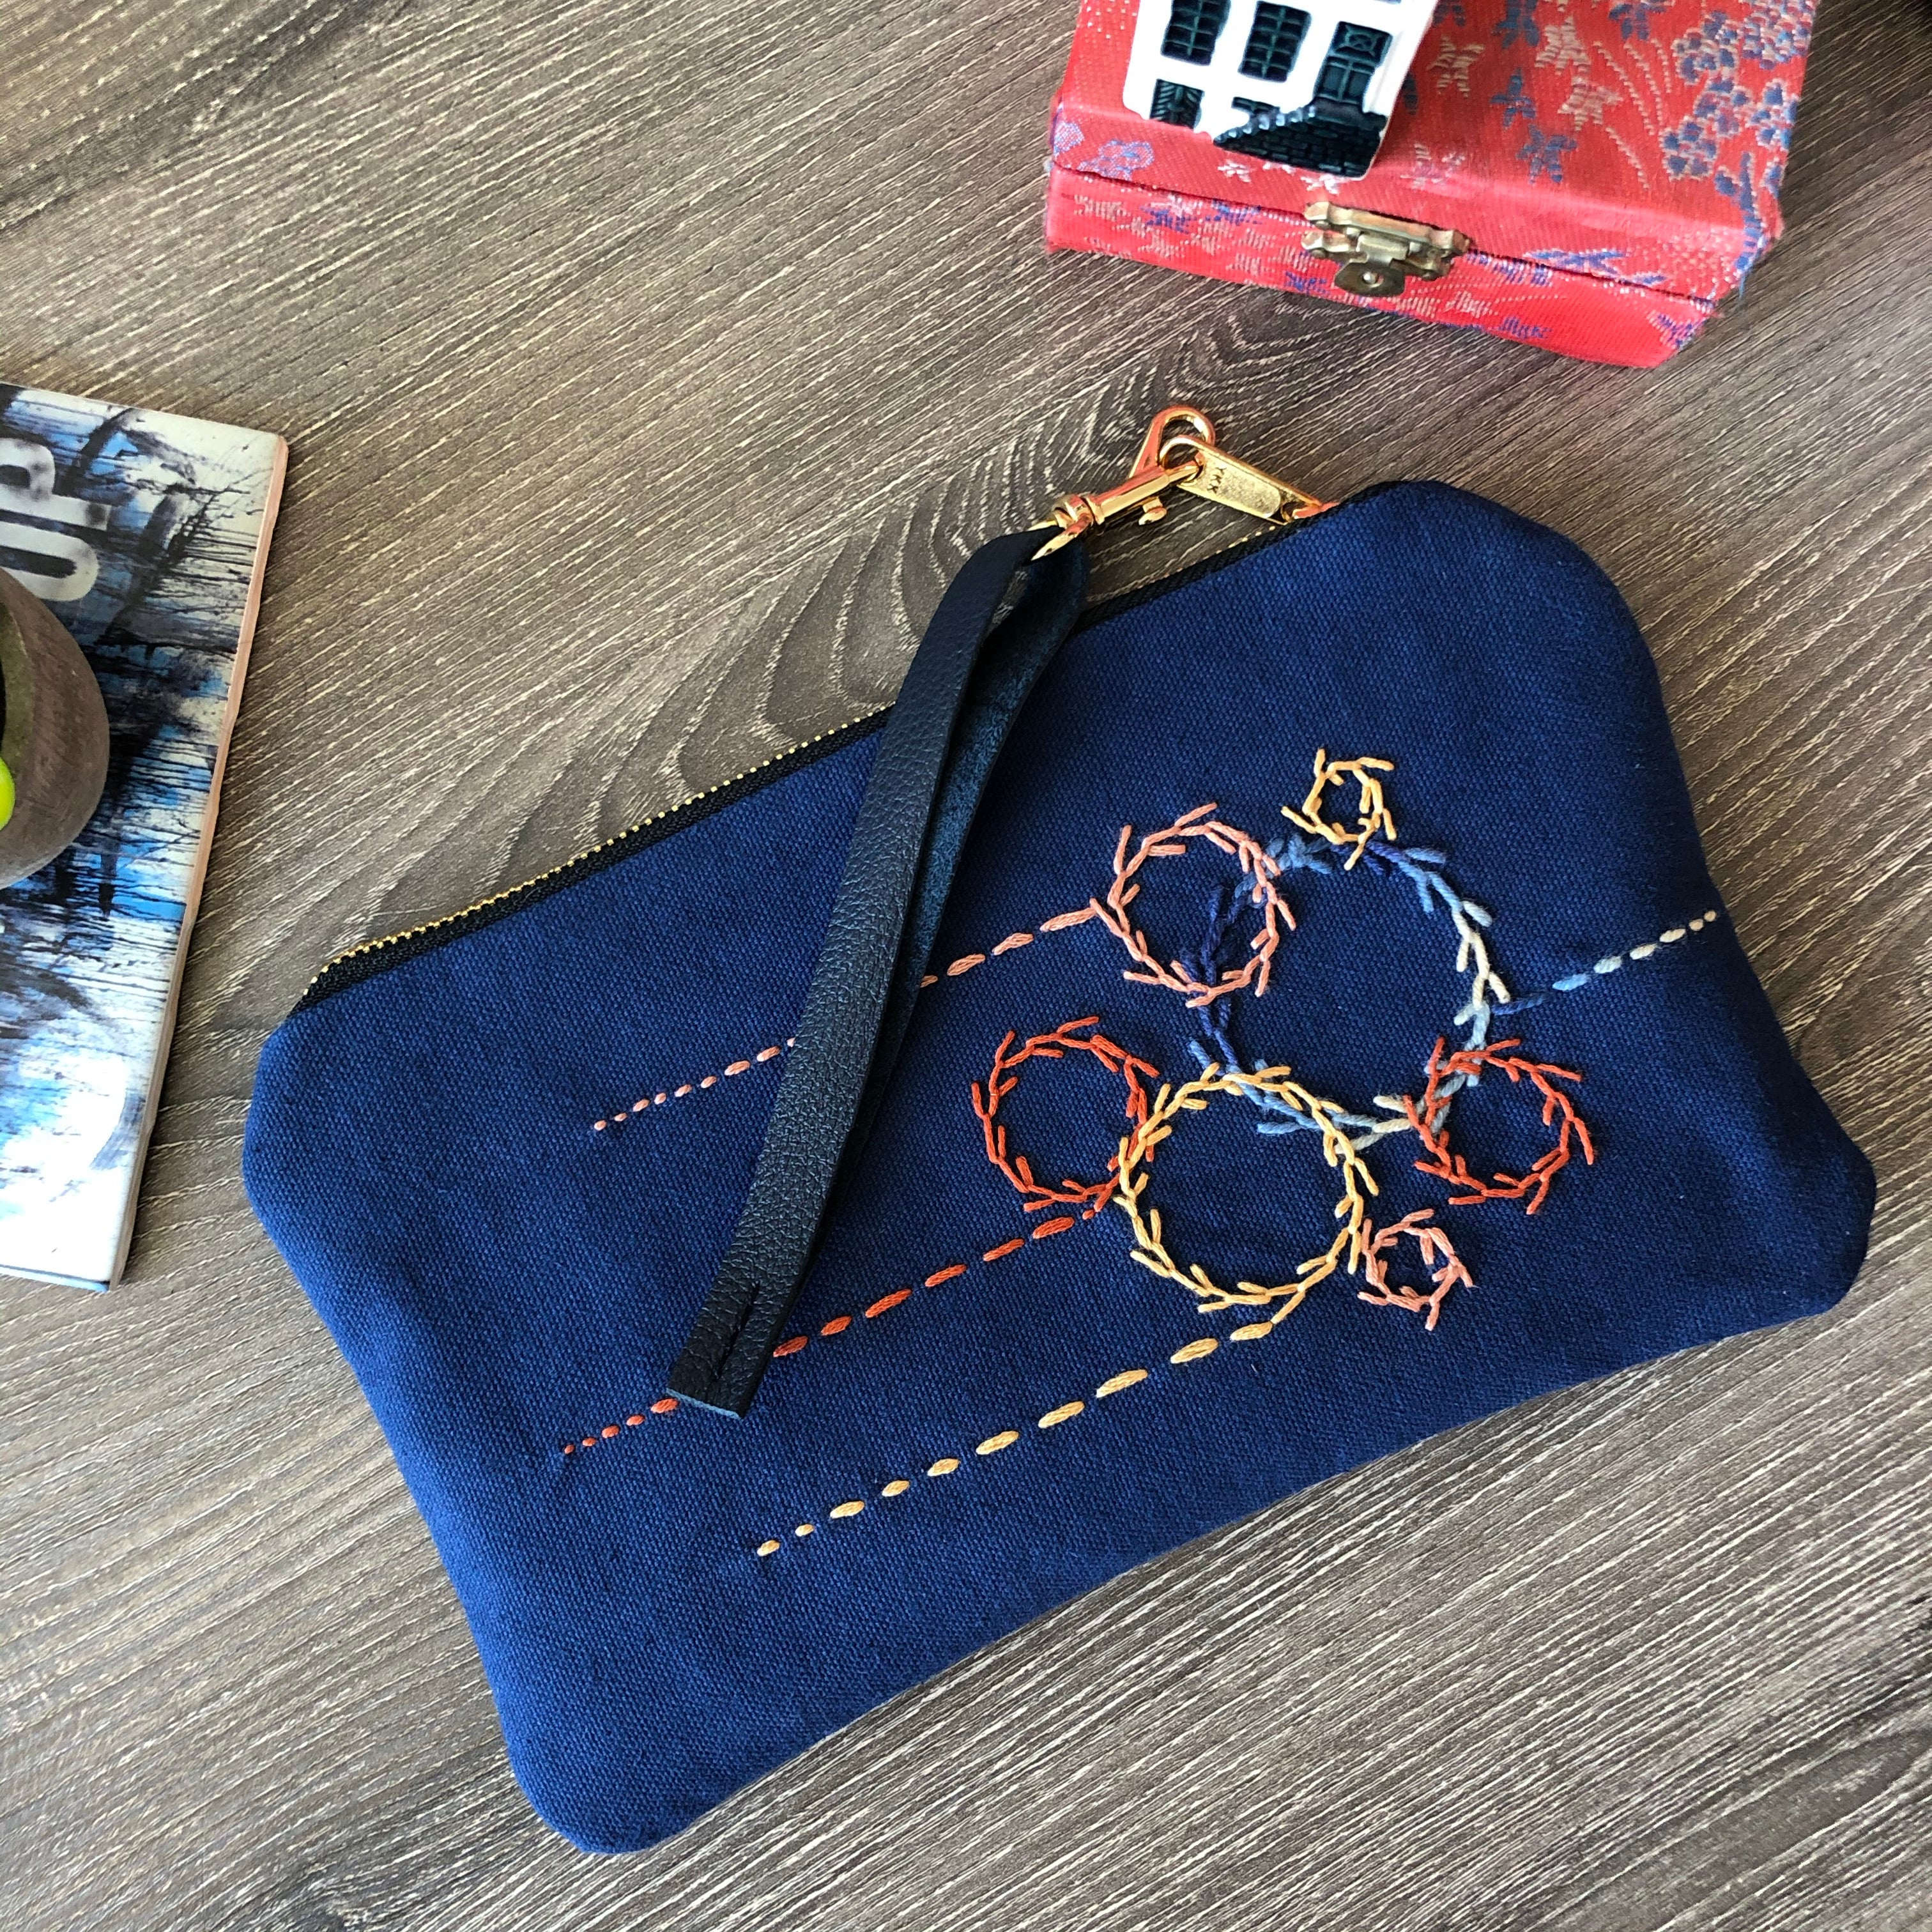 Embroidered Circles Navy Leather Clutch